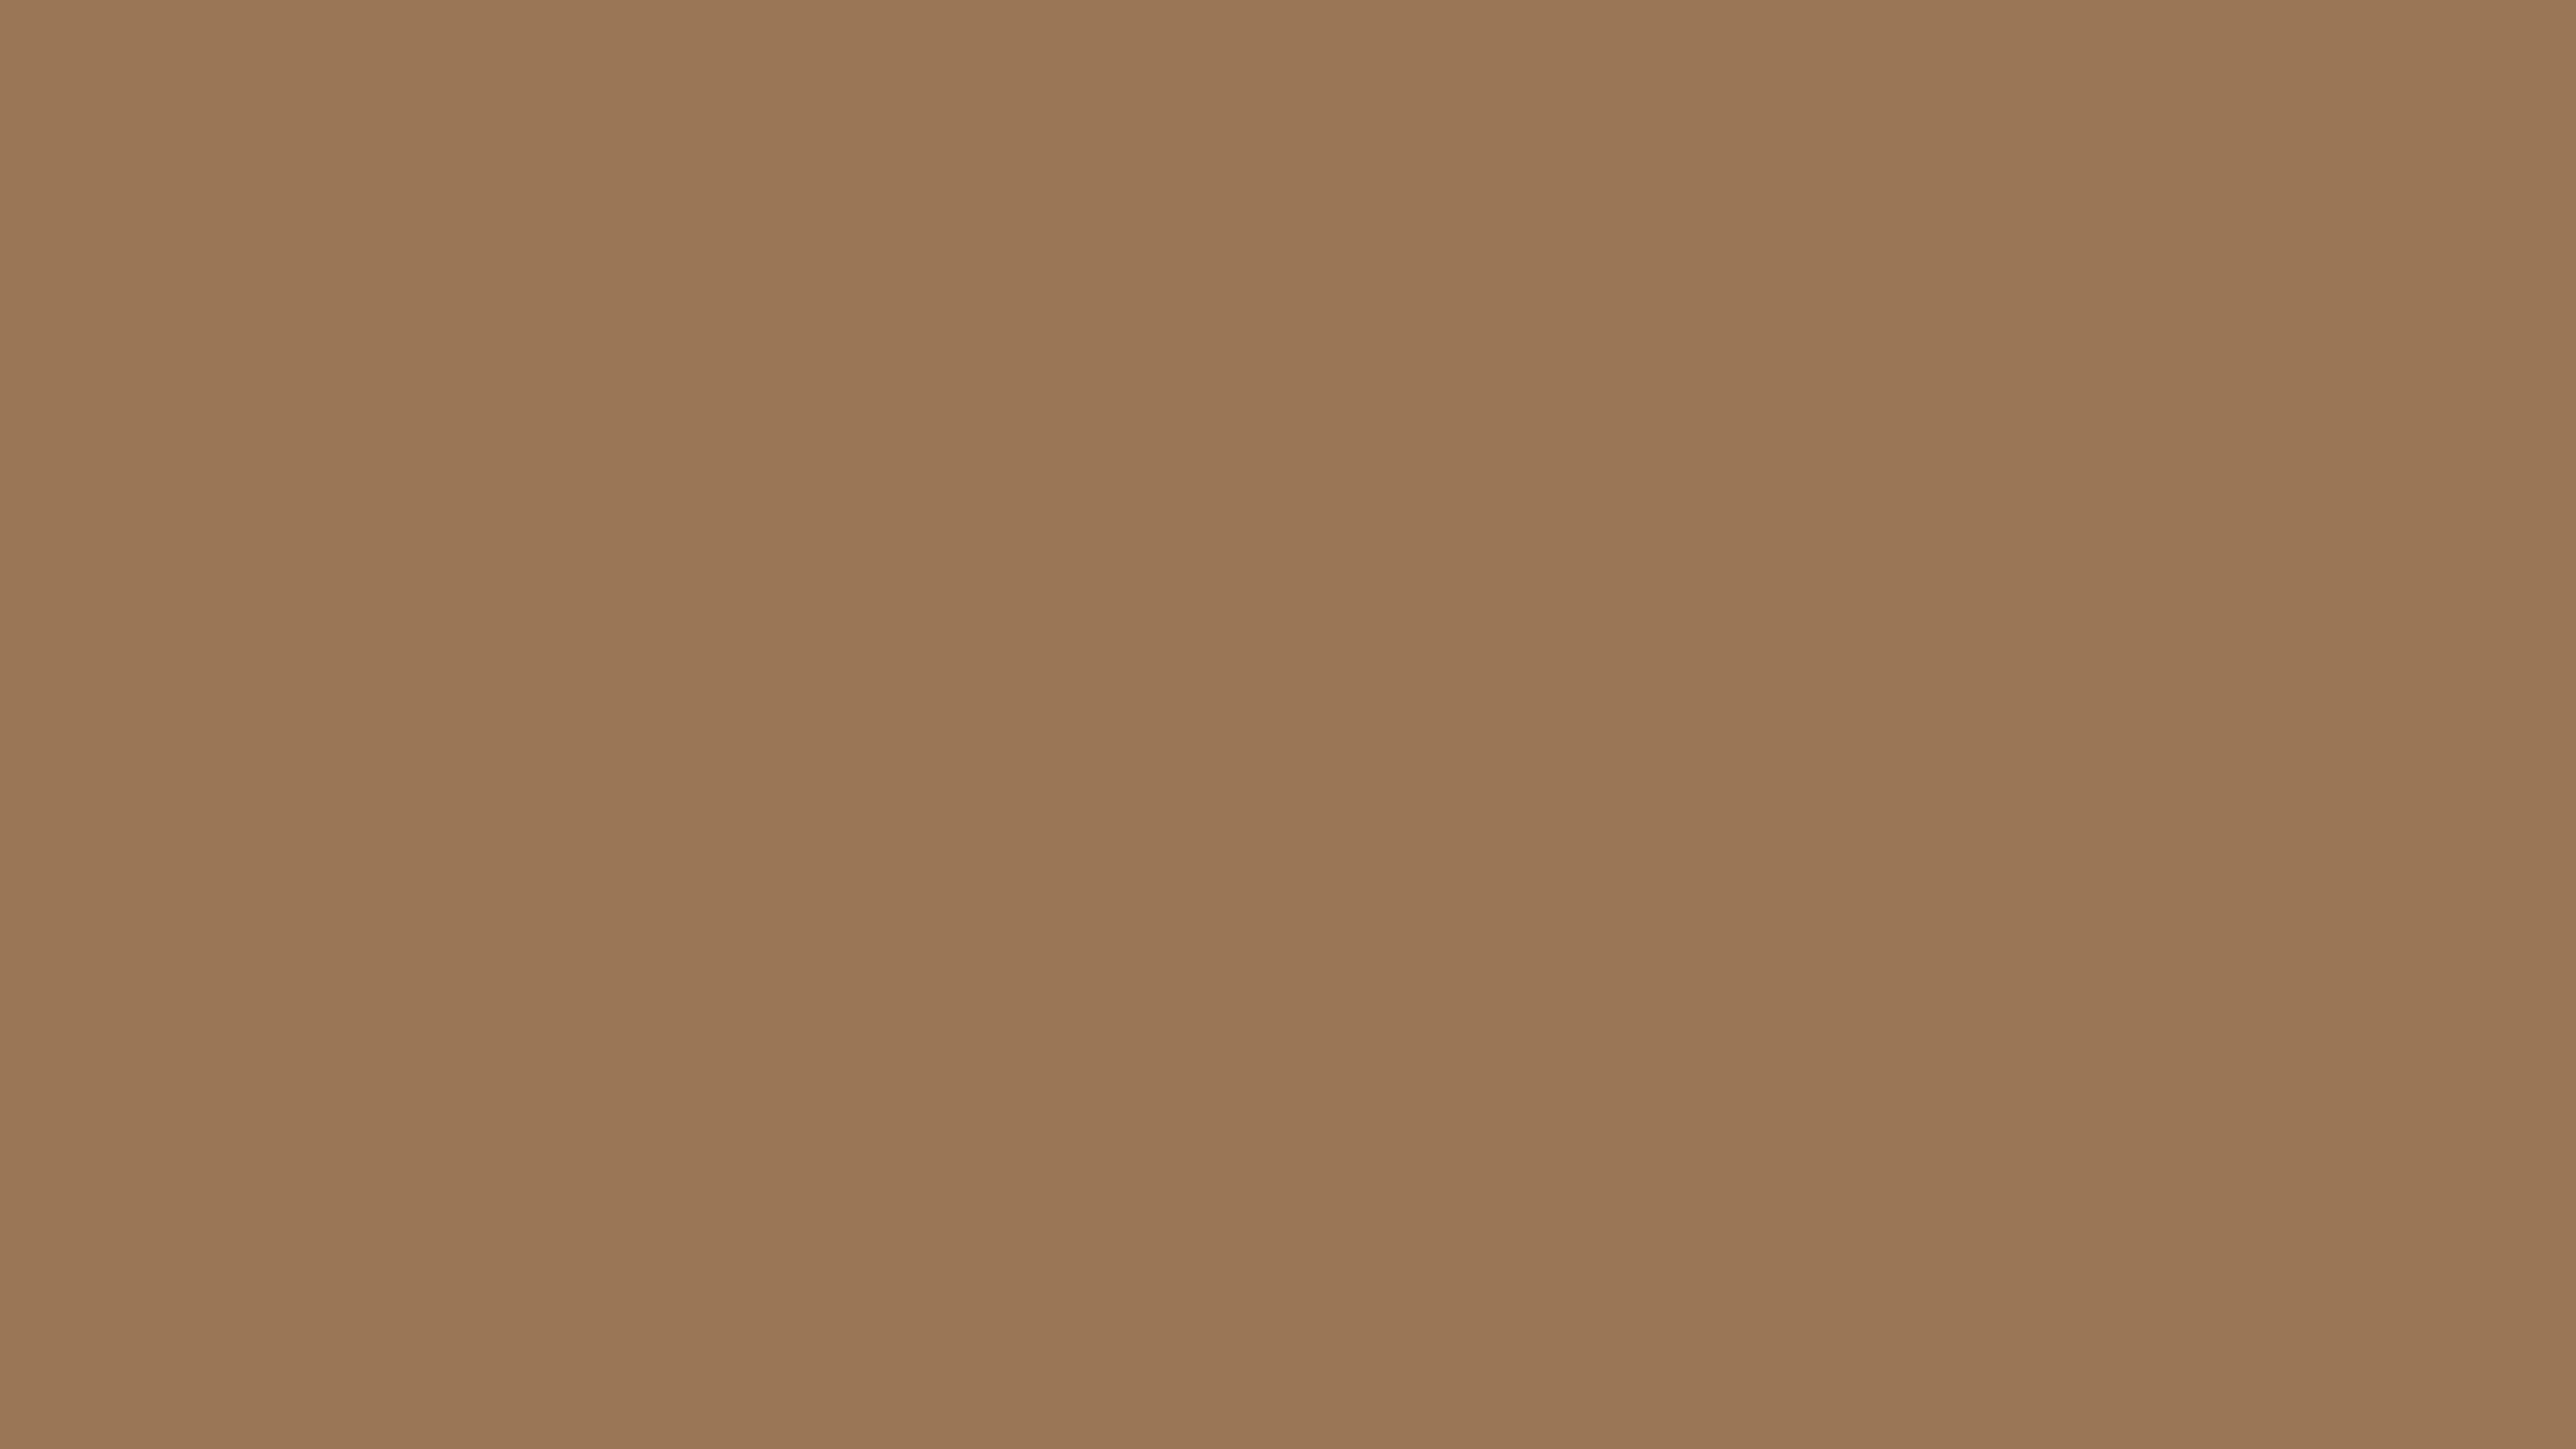 5120x2880 Pale Brown Solid Color Background